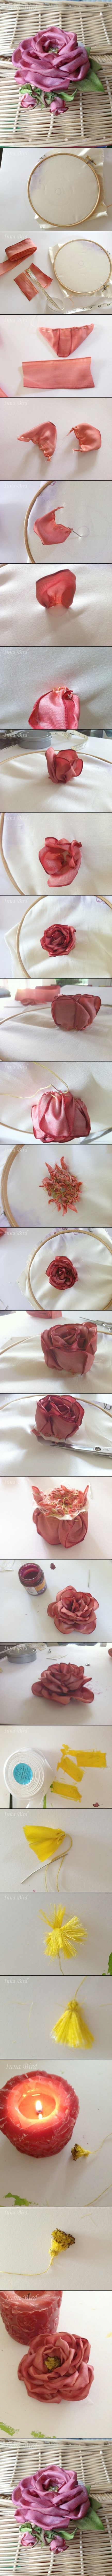 Silk Embroidery Motifs Ribbon Embroidery Lessons Silk Ribbon